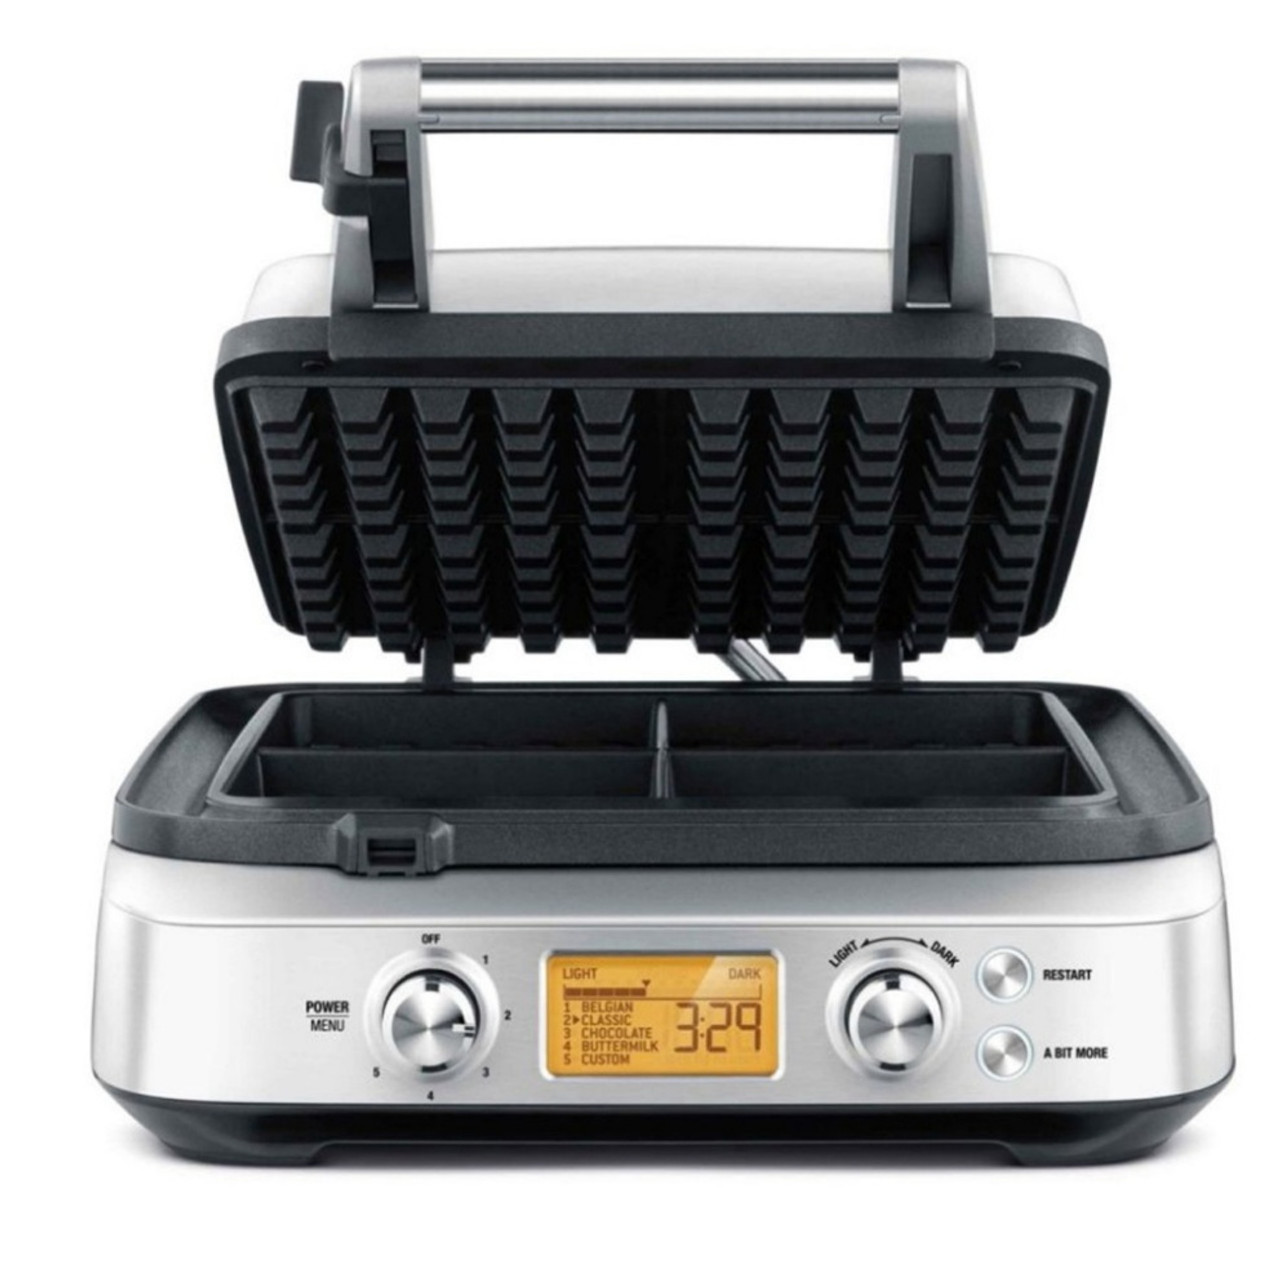 BREVILLE SMART WAFFLE 4 SQUARE